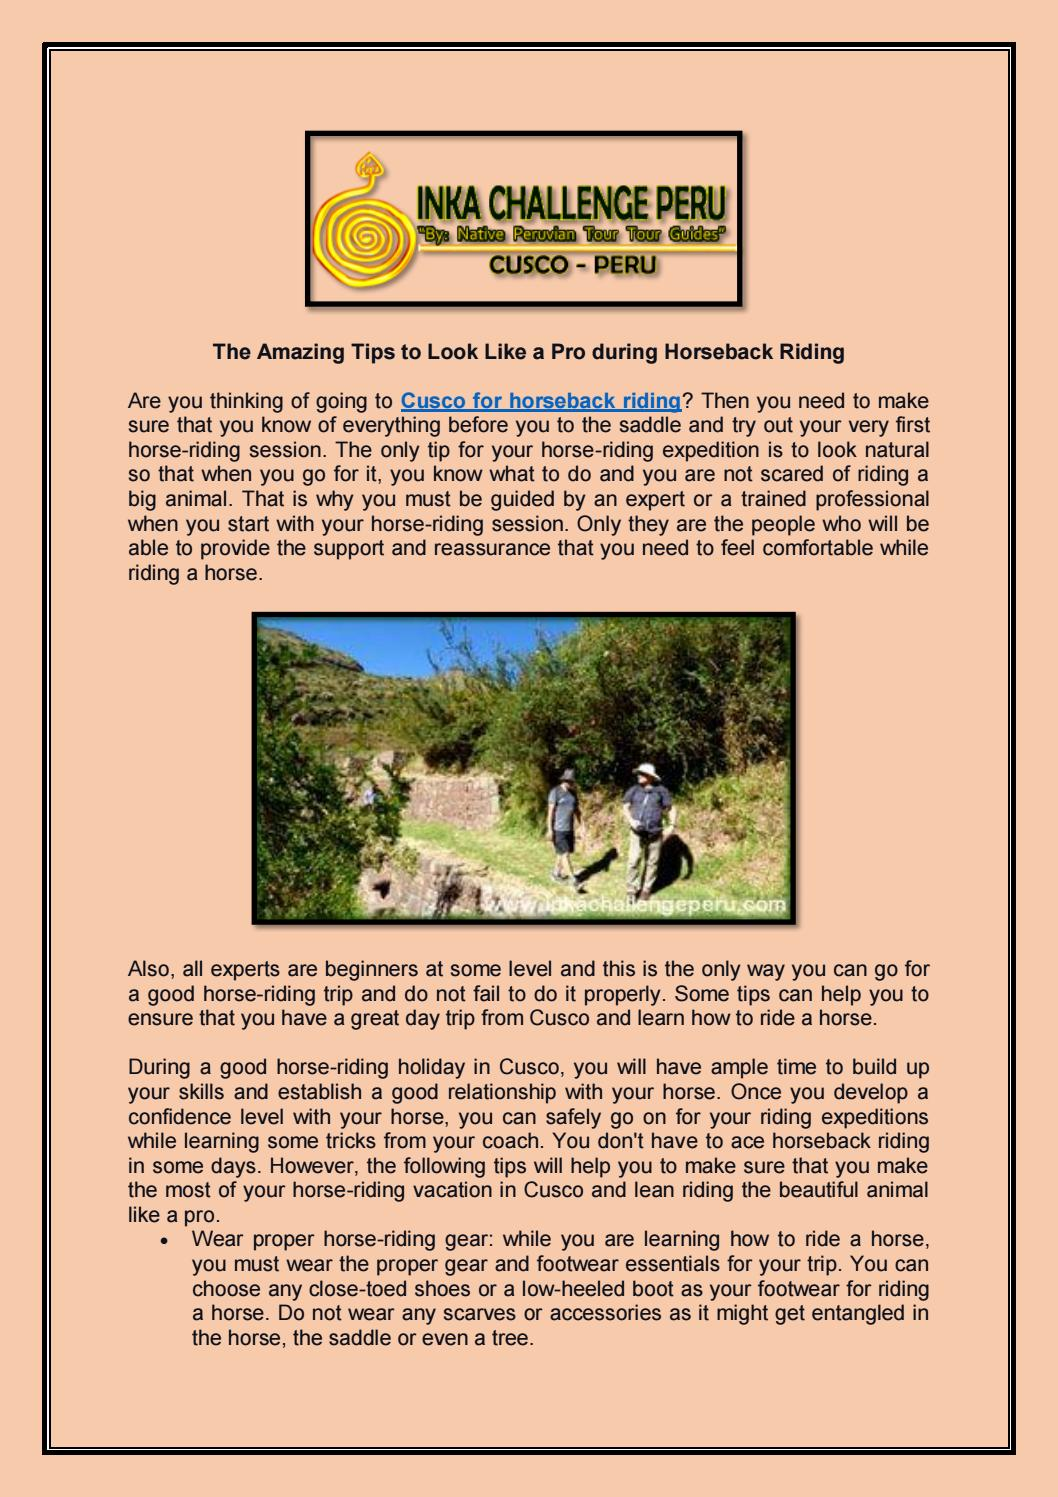 The Amazing Tips To Look Like A Pro During Horseback Riding By Inkachallengeperunew Issuu